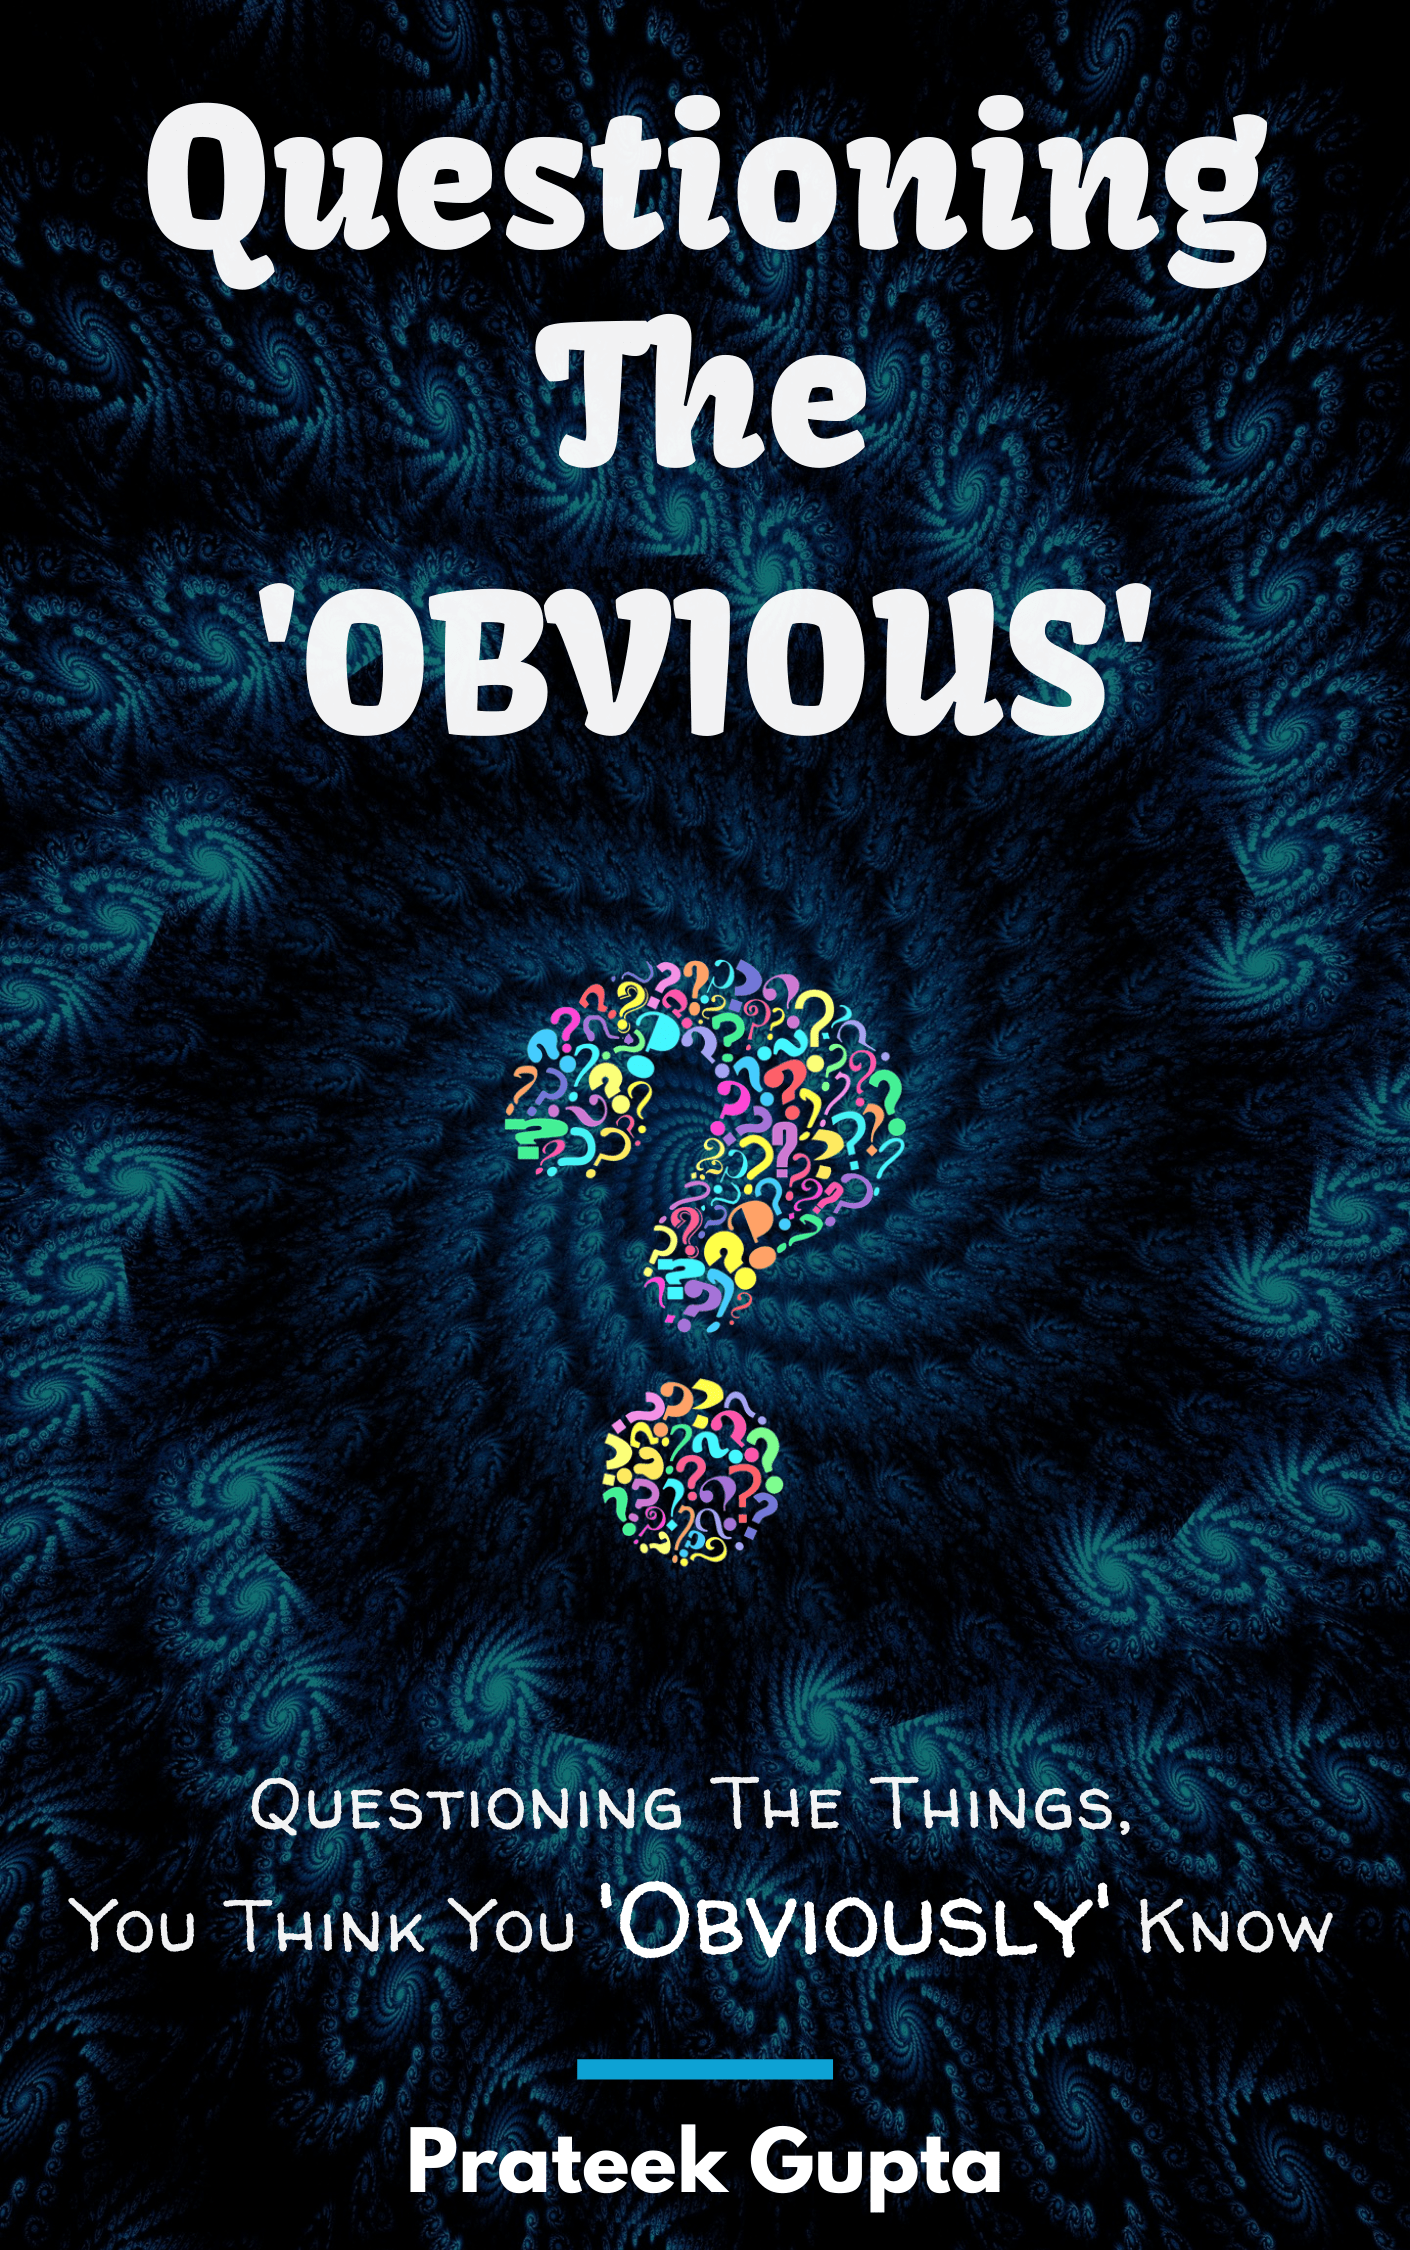 Questioning The Obvious - Questioning the Things, You Think You 'OBVIOUSLY' Know